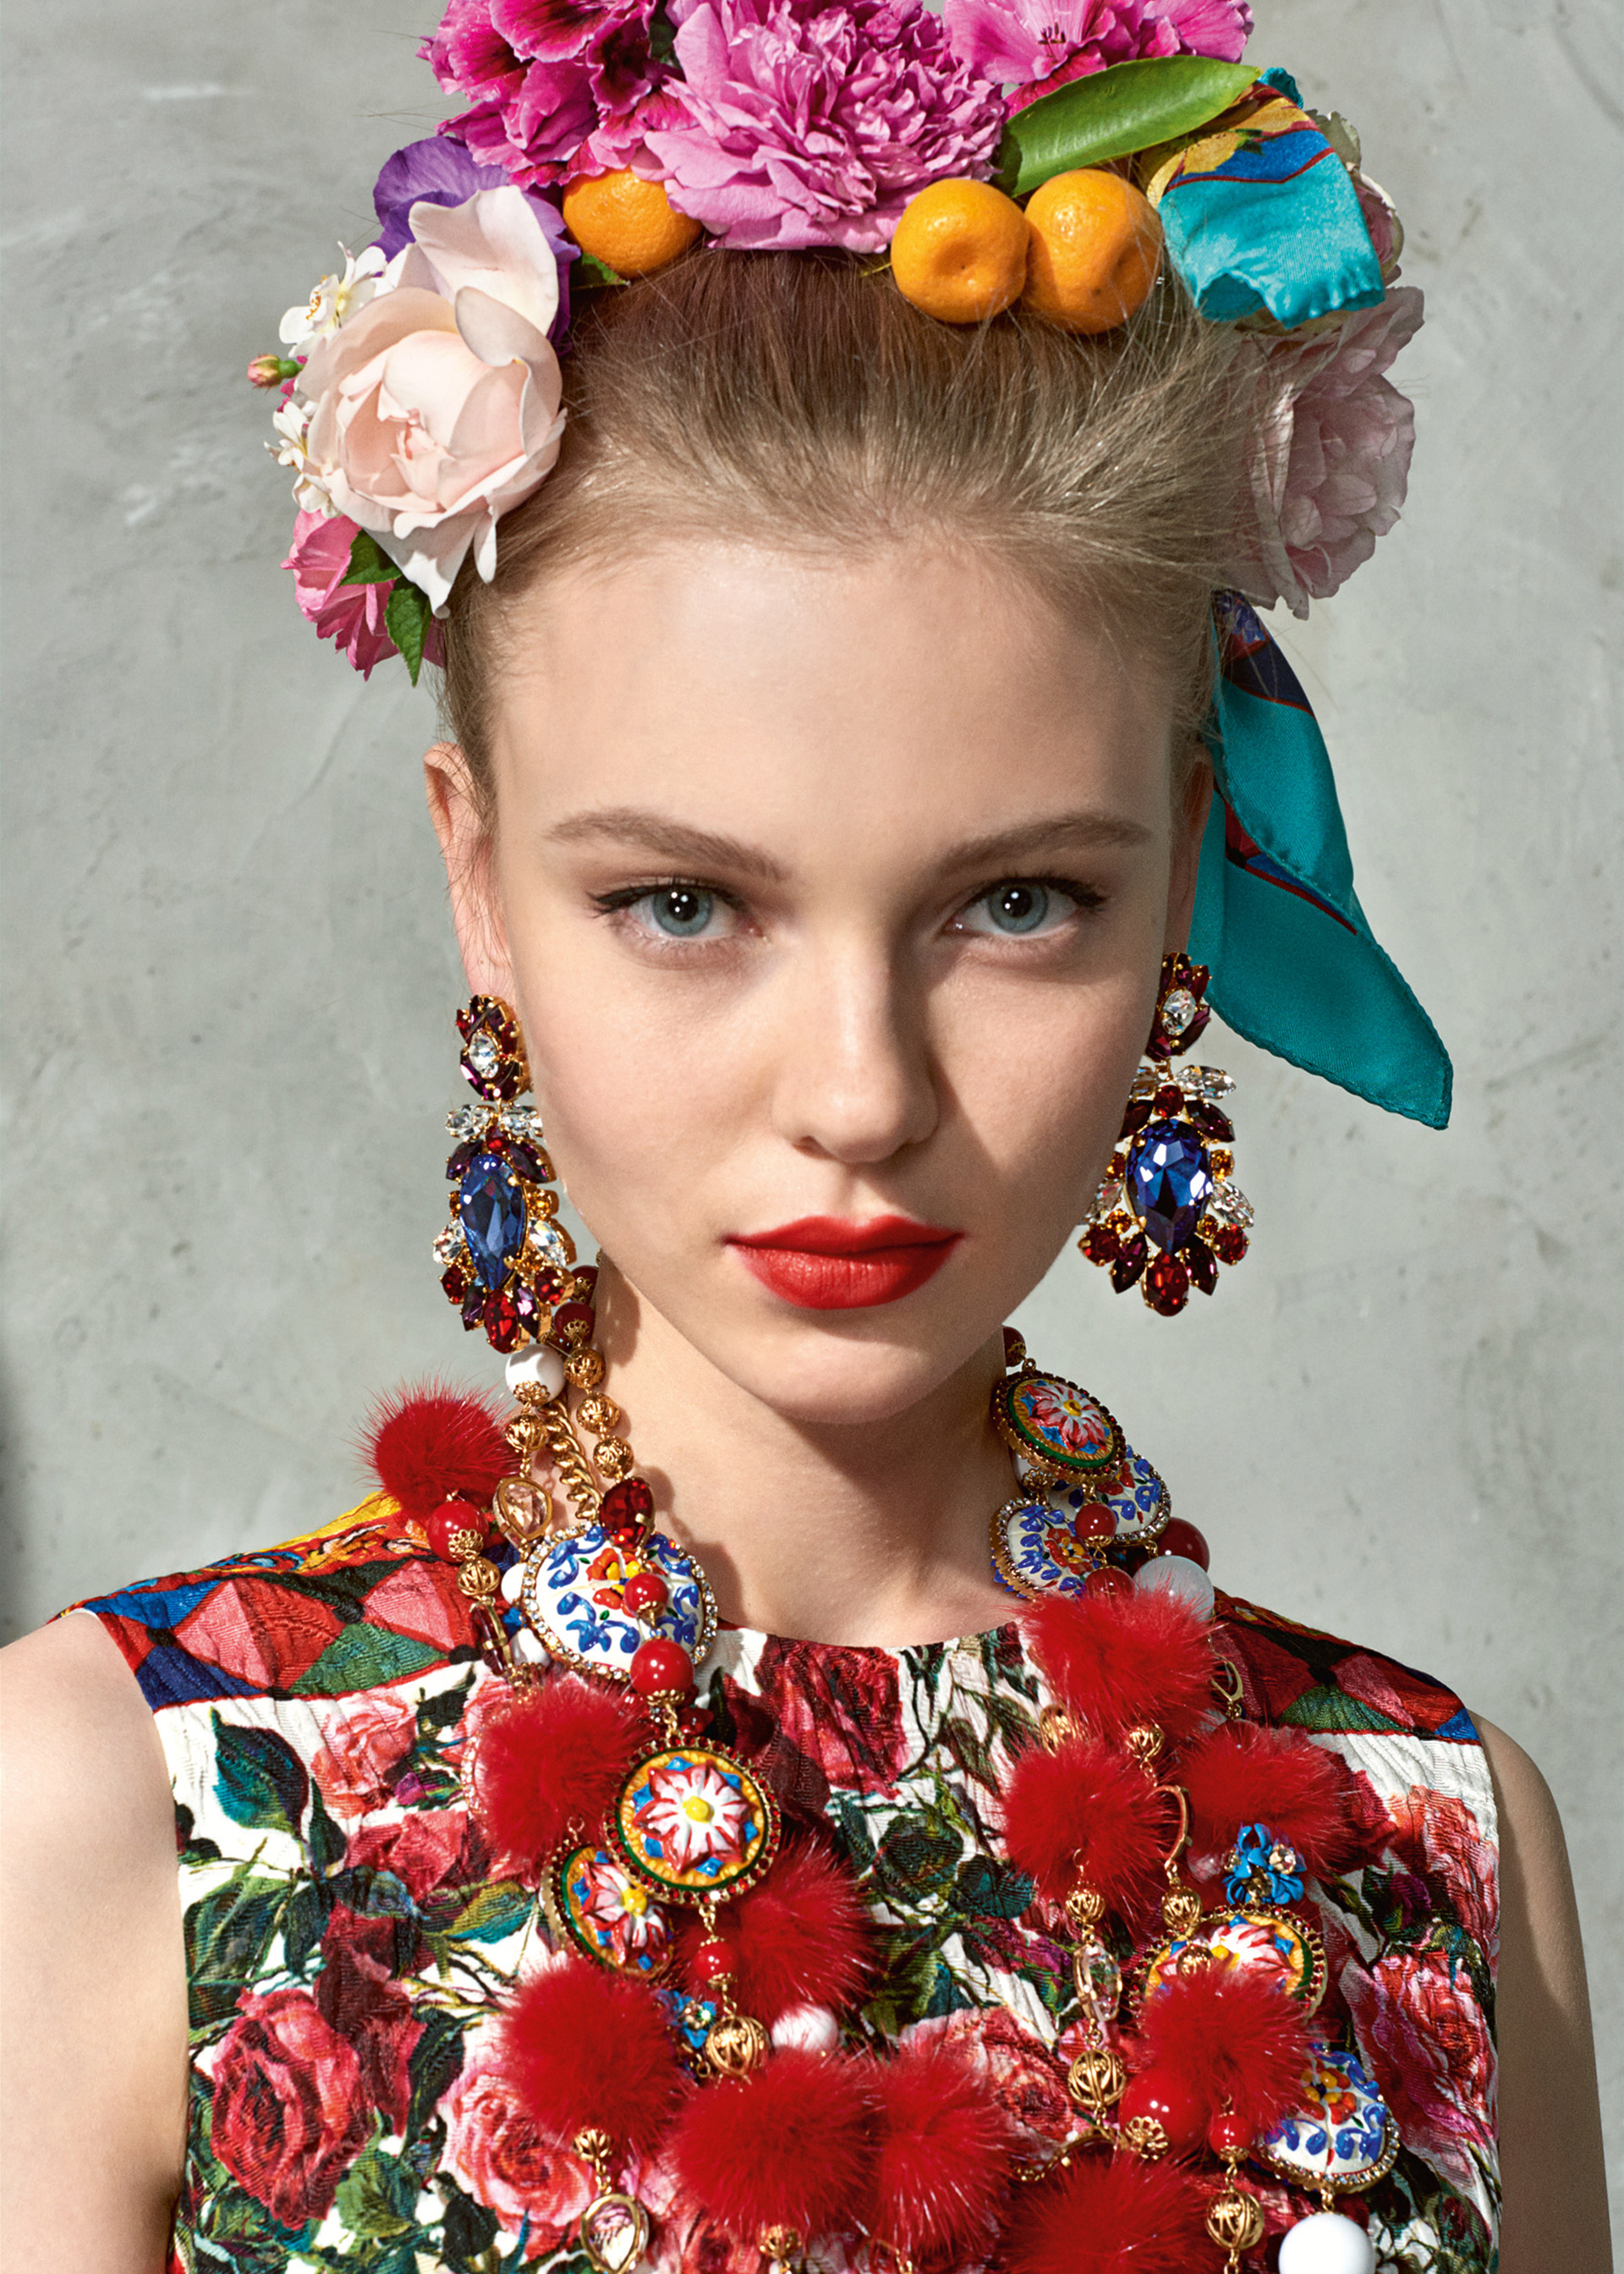 dolce and gabbana summer 2017 woman collection 102 - Dolce & Gabbana/Spring Summer 2017 Collection/ Mambo